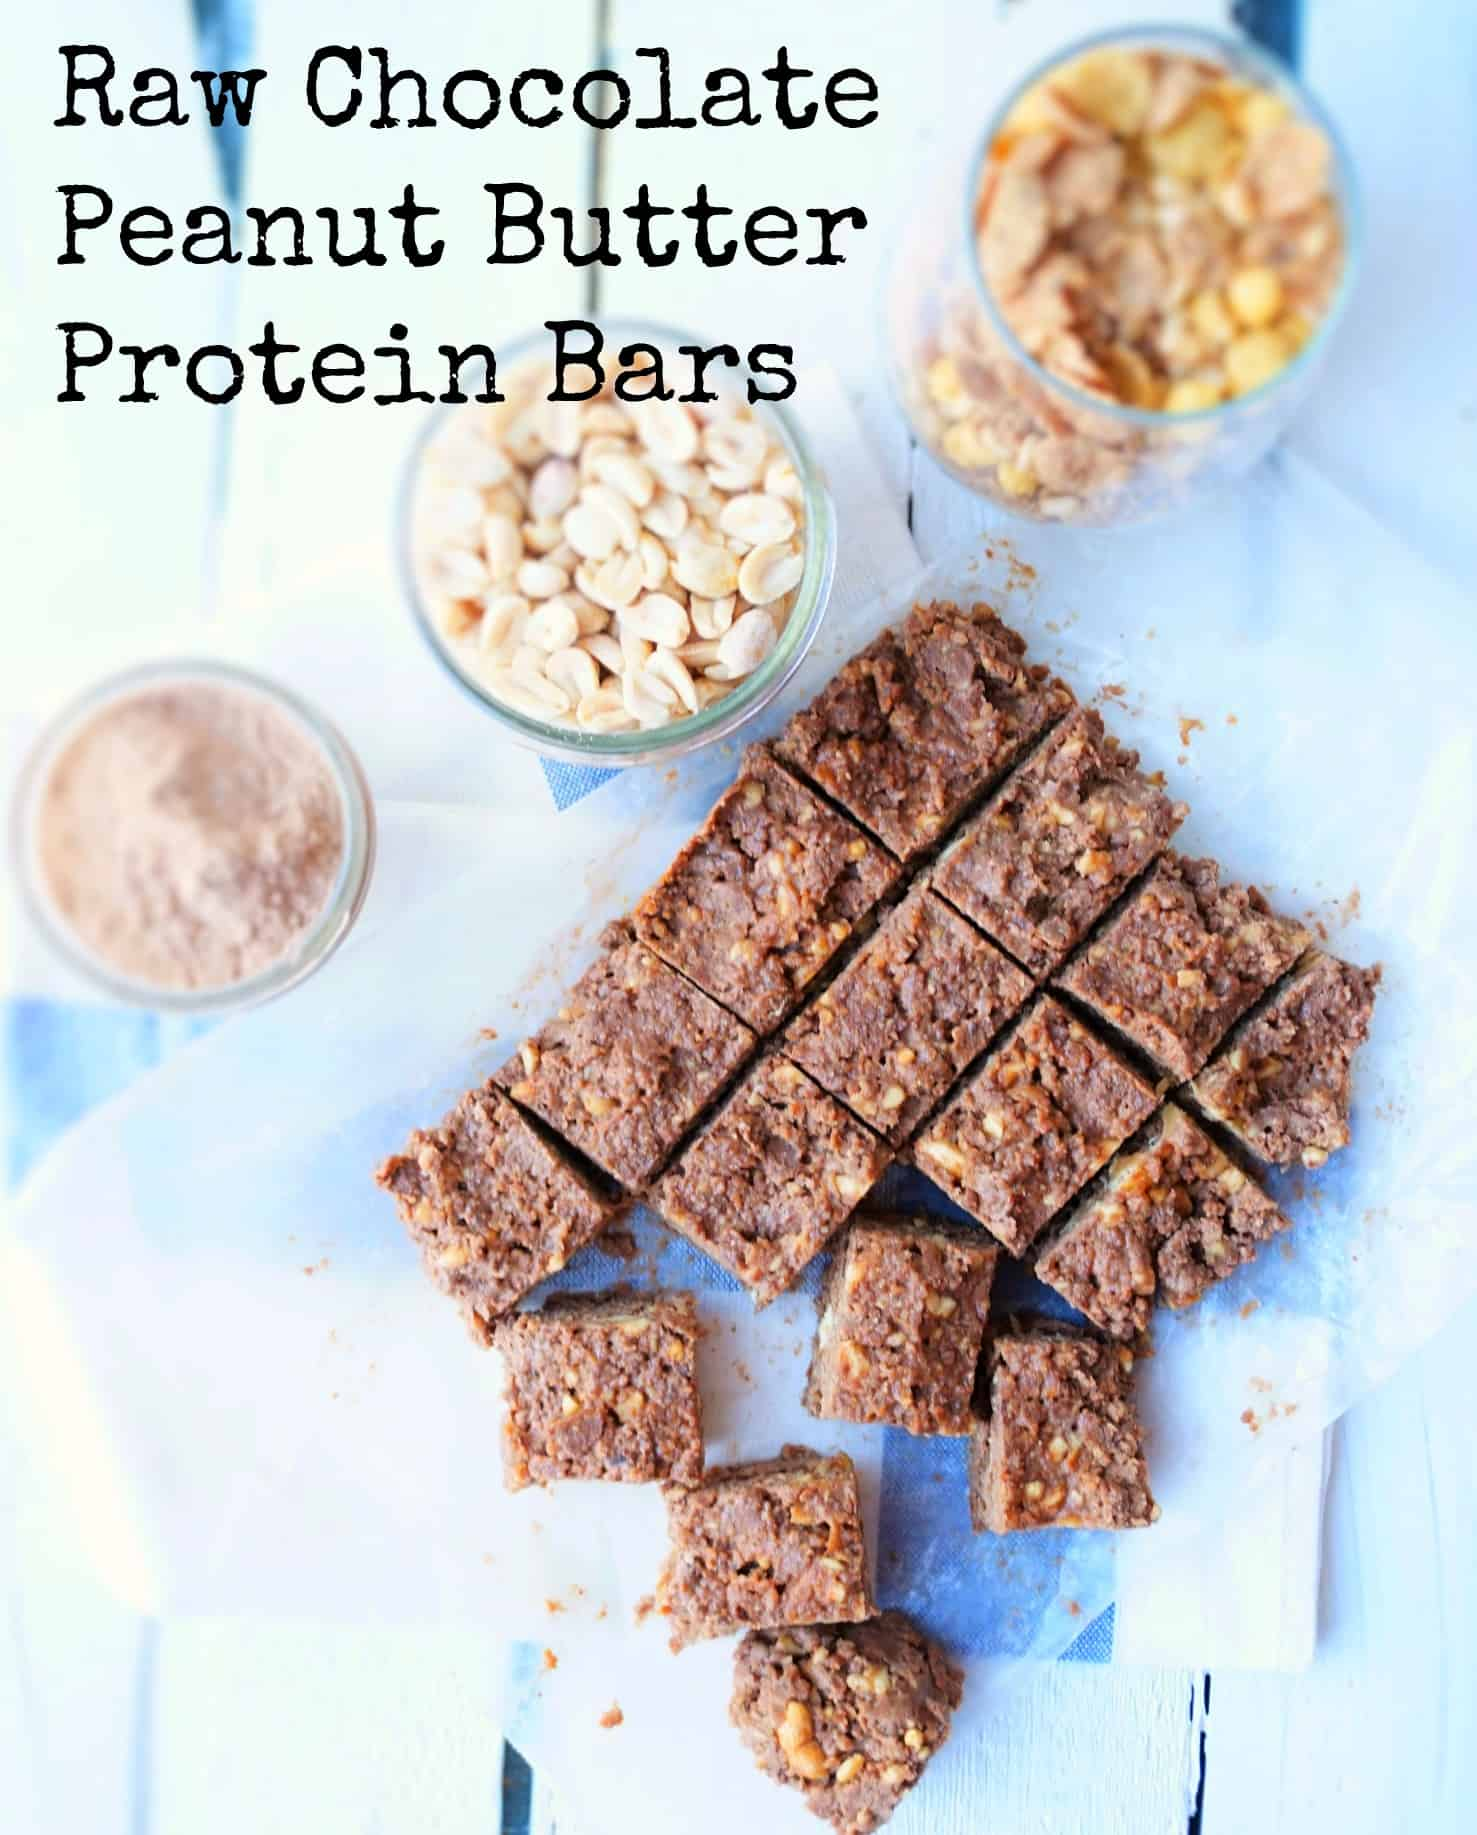 Raw Chocolate Peanut Butter Protein Bars Shaws Simple Swaps 4